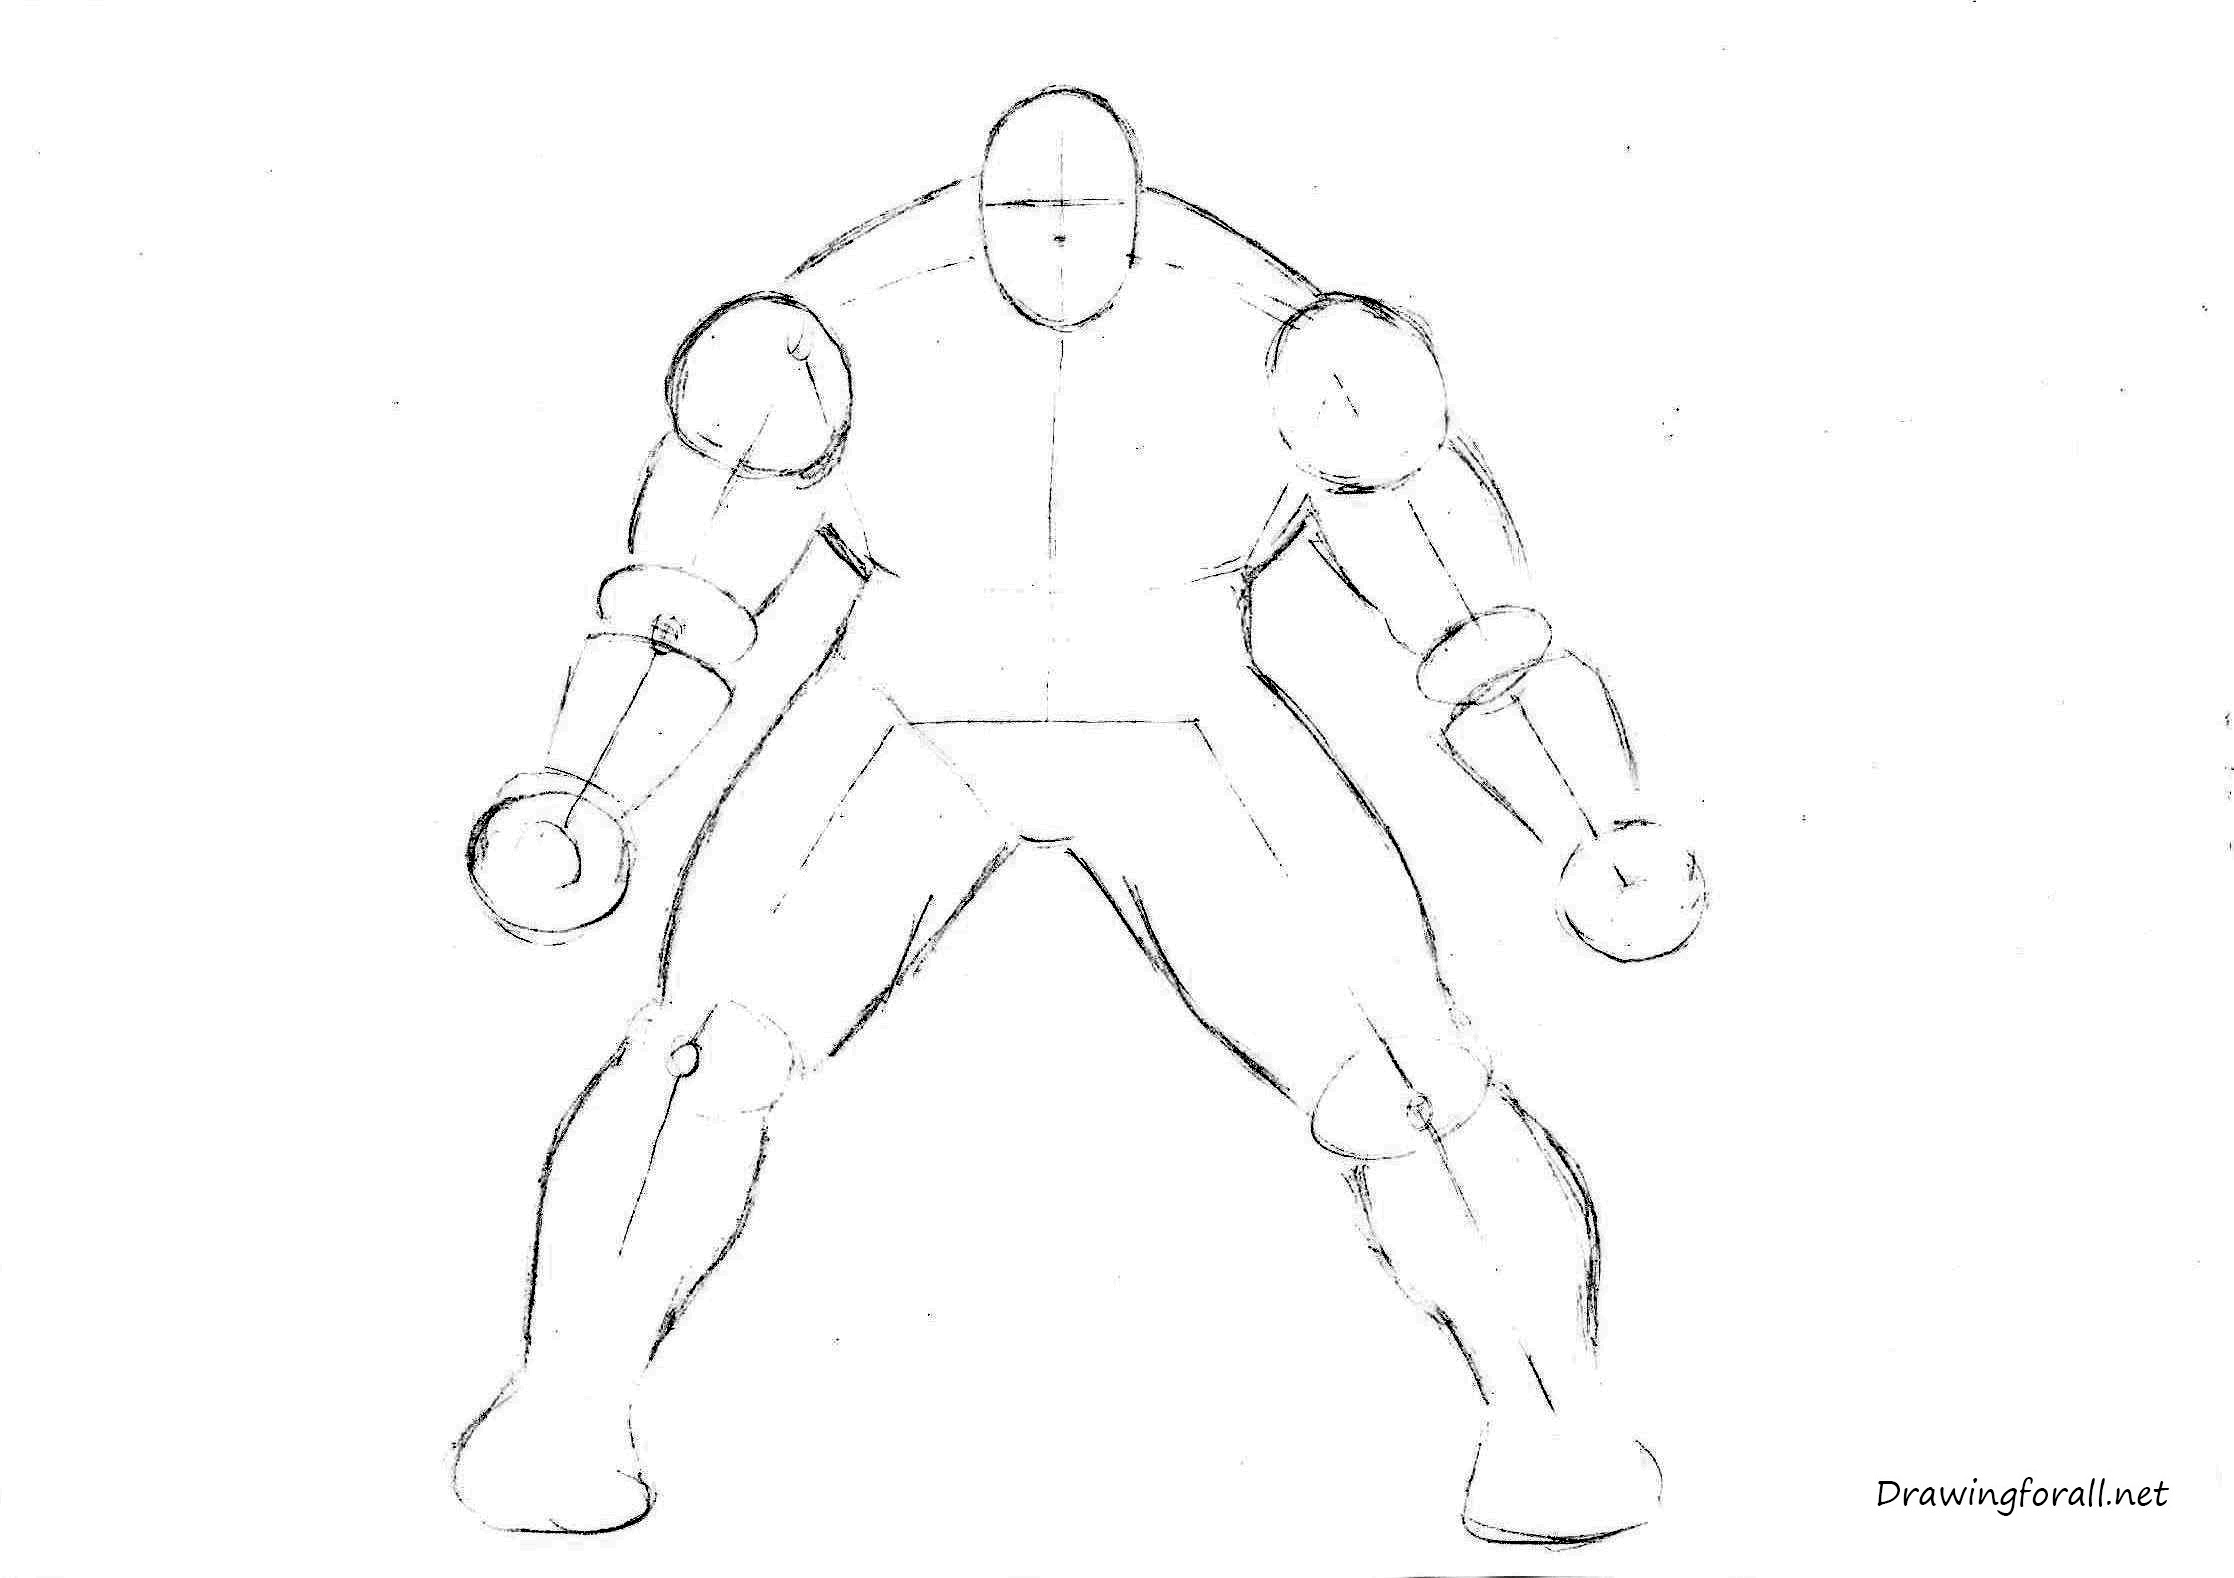 how to draw hulk easy step by step how to draw the incredible hulk drawingforallnet easy how draw by step to hulk step